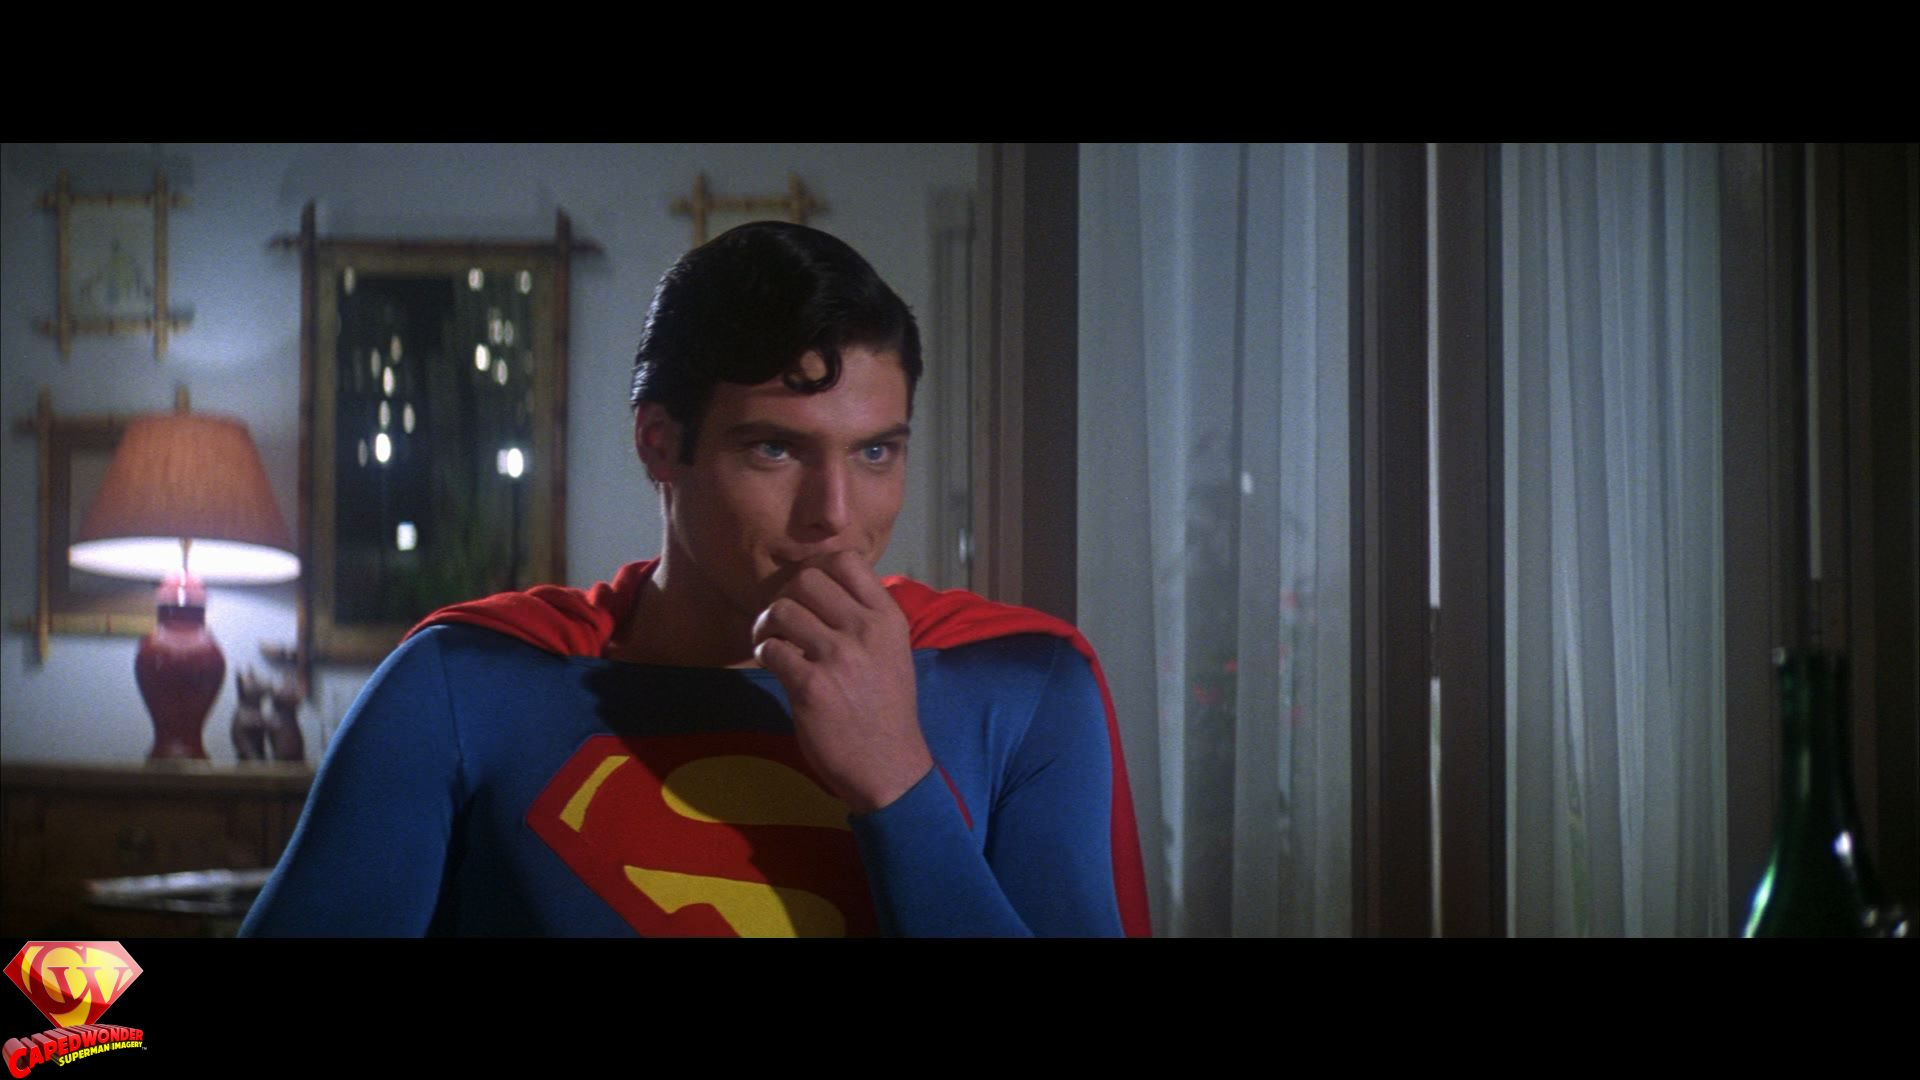 CapedWonder-Superman-The-Movie-2006-expanded-Blu-ray-screenshot-475